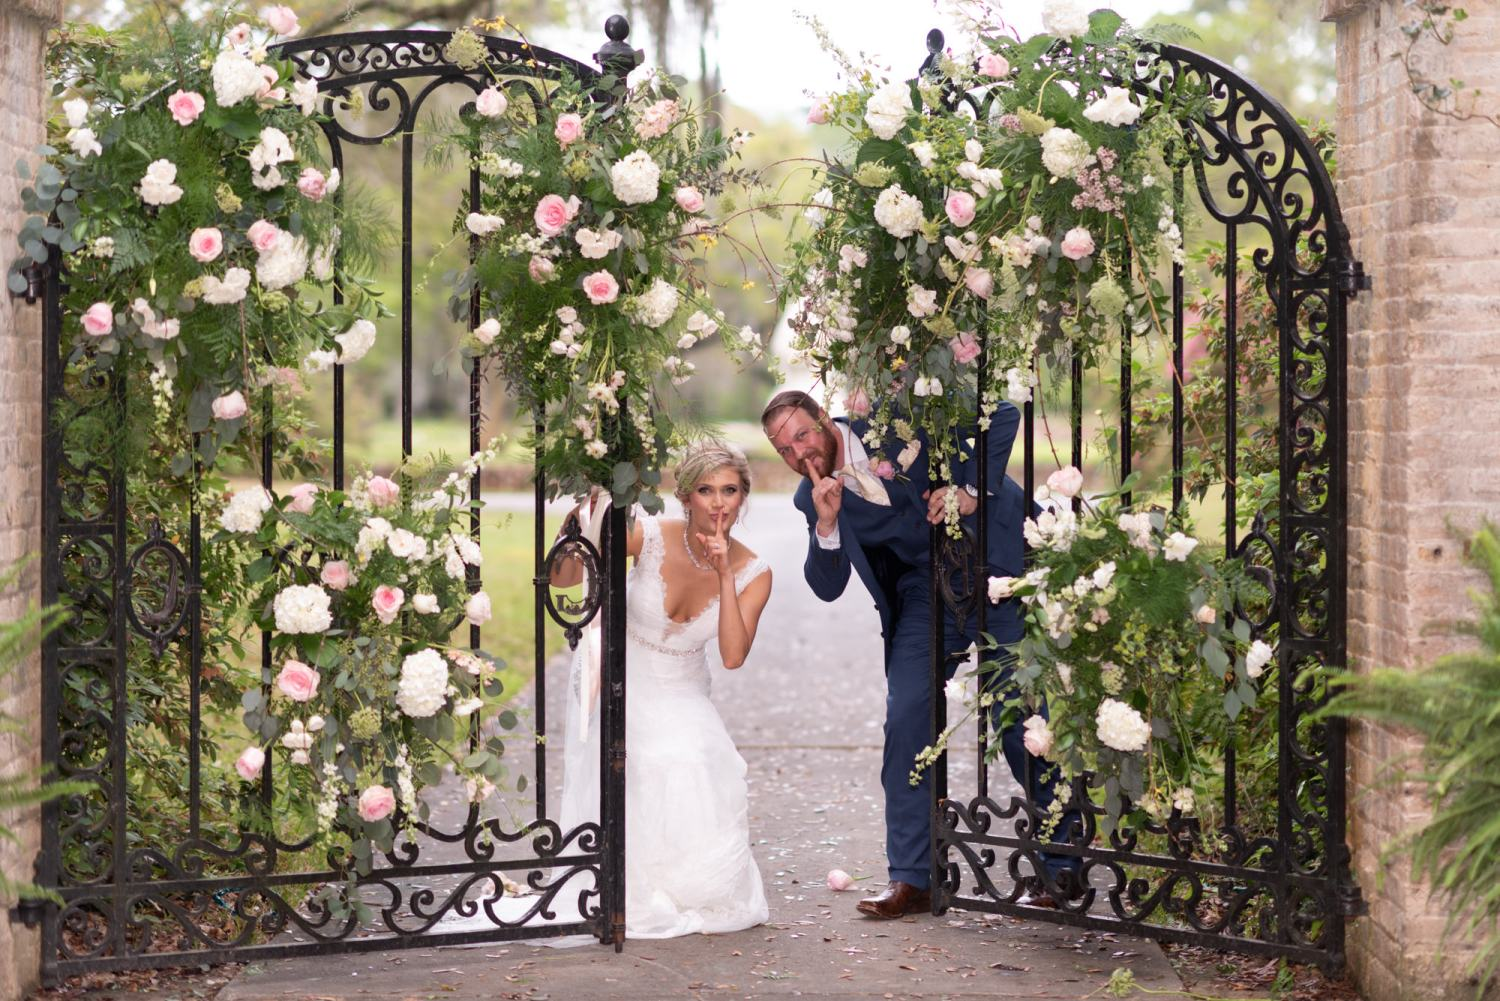 Groom and bride having fun by the gates - Brookgreen Gardens